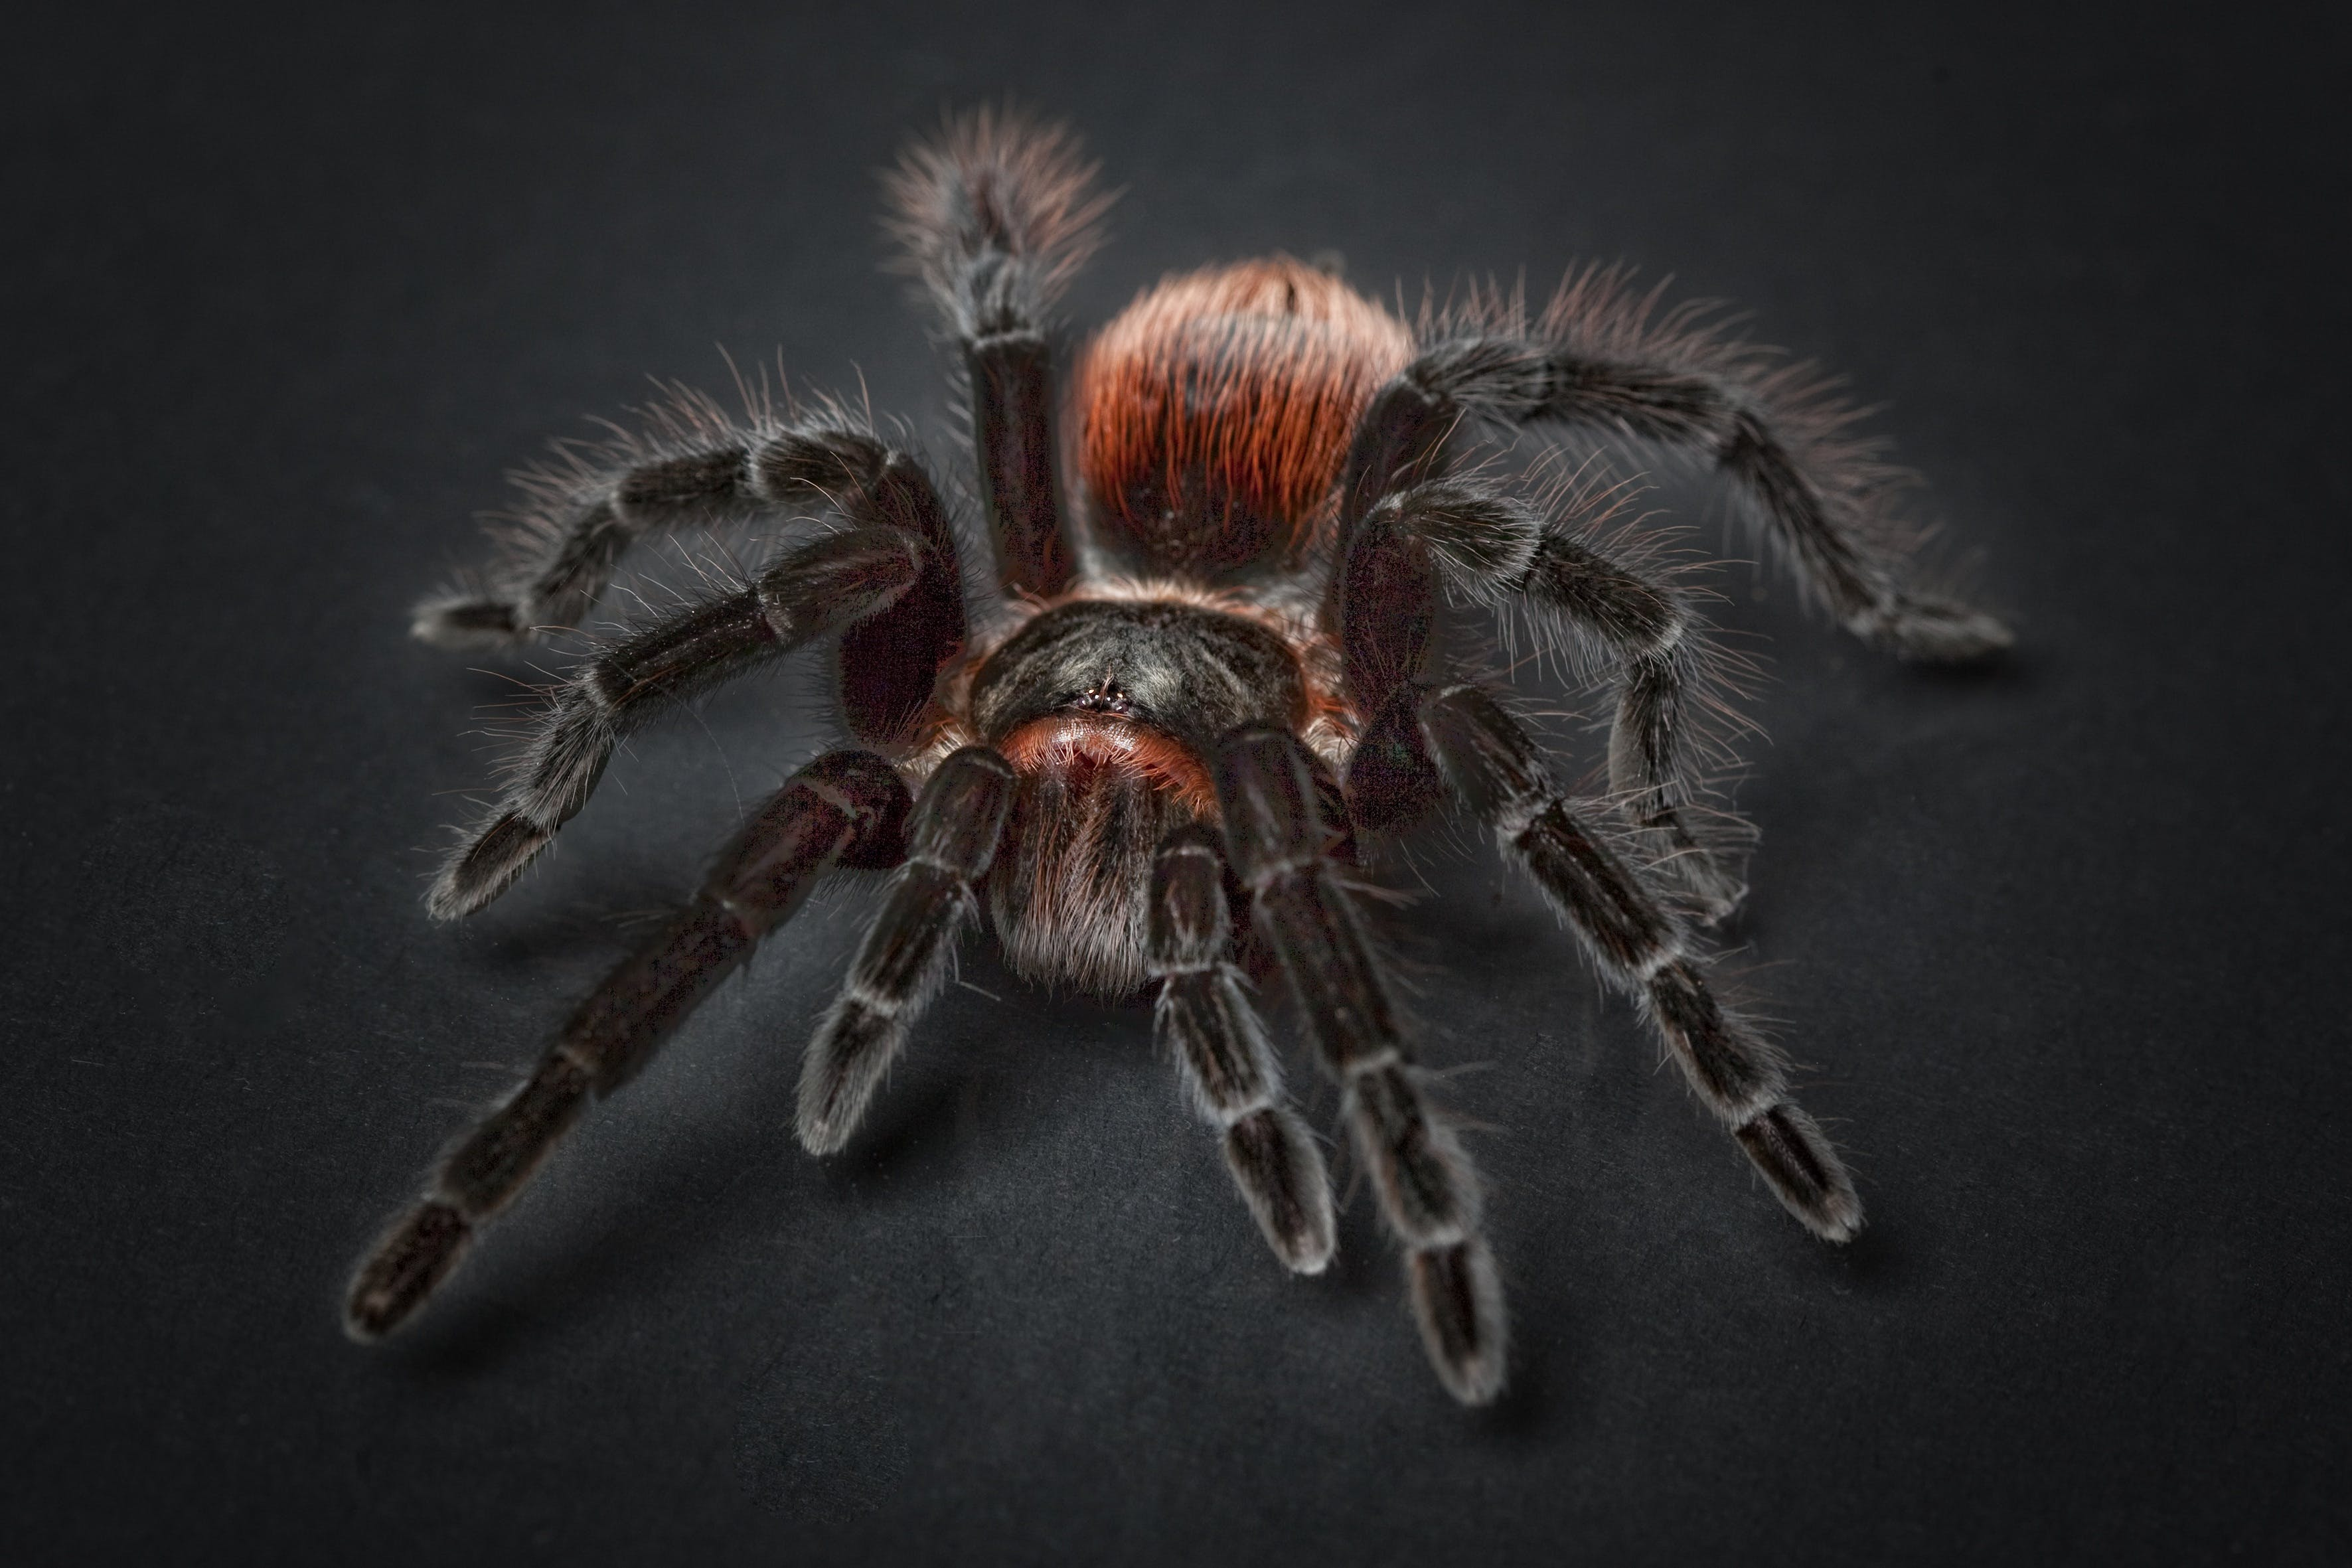 Black and Orange Tarantula